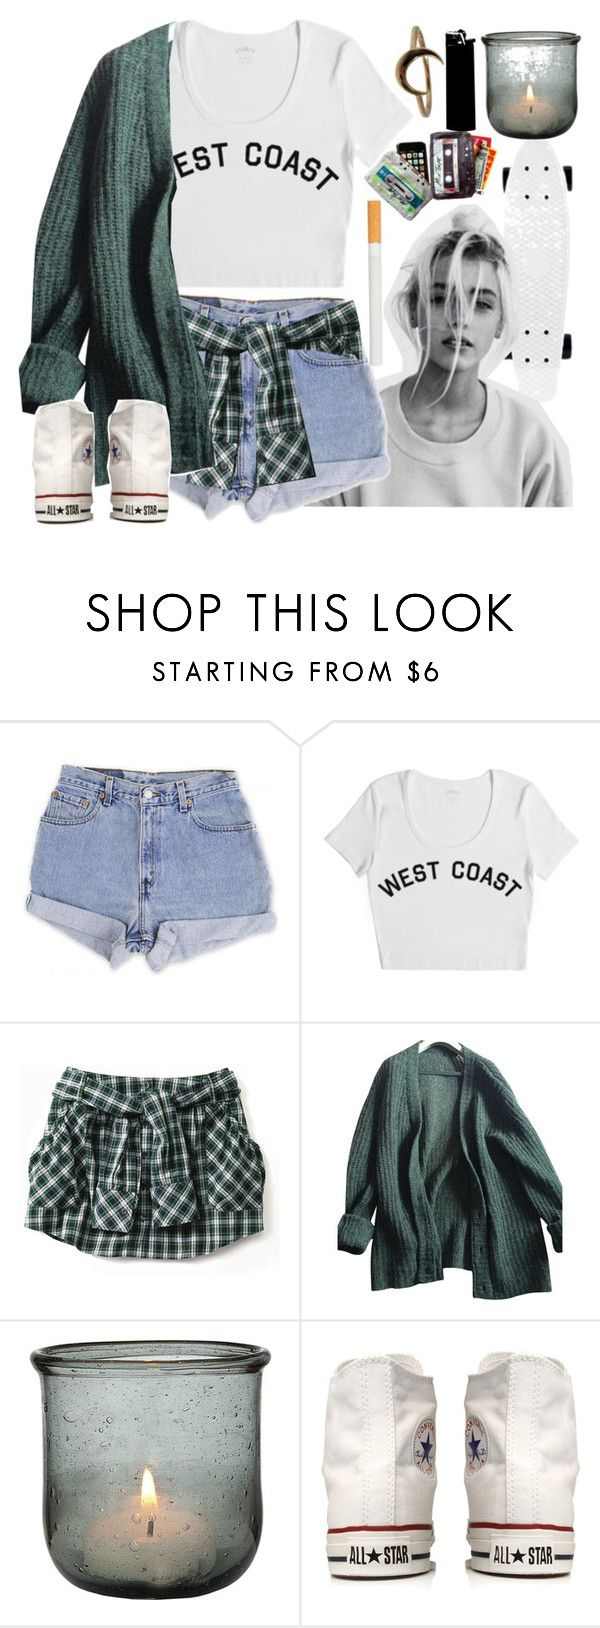 """Teenage Dirt Bag #73"" by jlol ❤ liked on Polyvore featuring Levi's, Stampd, Prada, Converse and Lulu Frost"